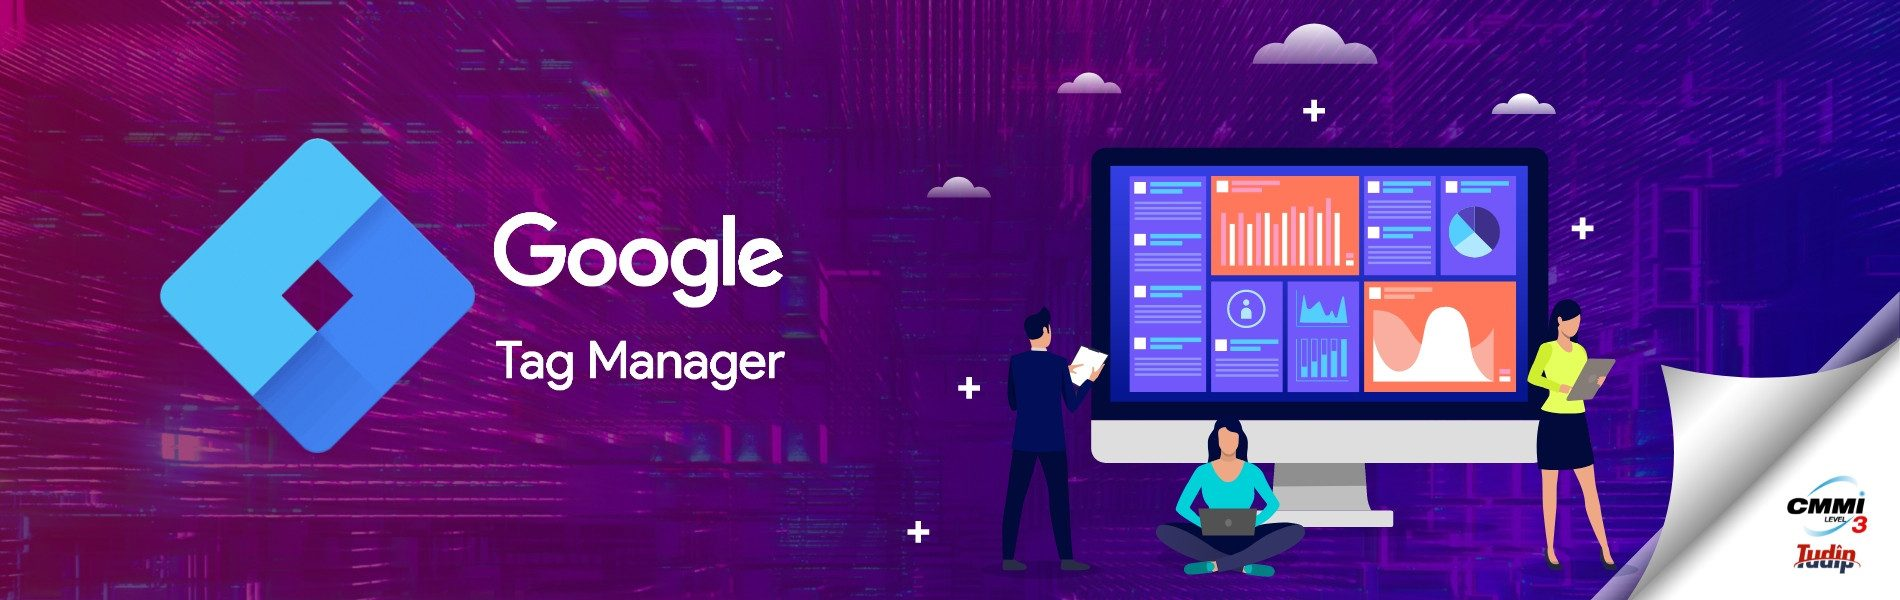 Enhance your application with the help of Google Tag Manager